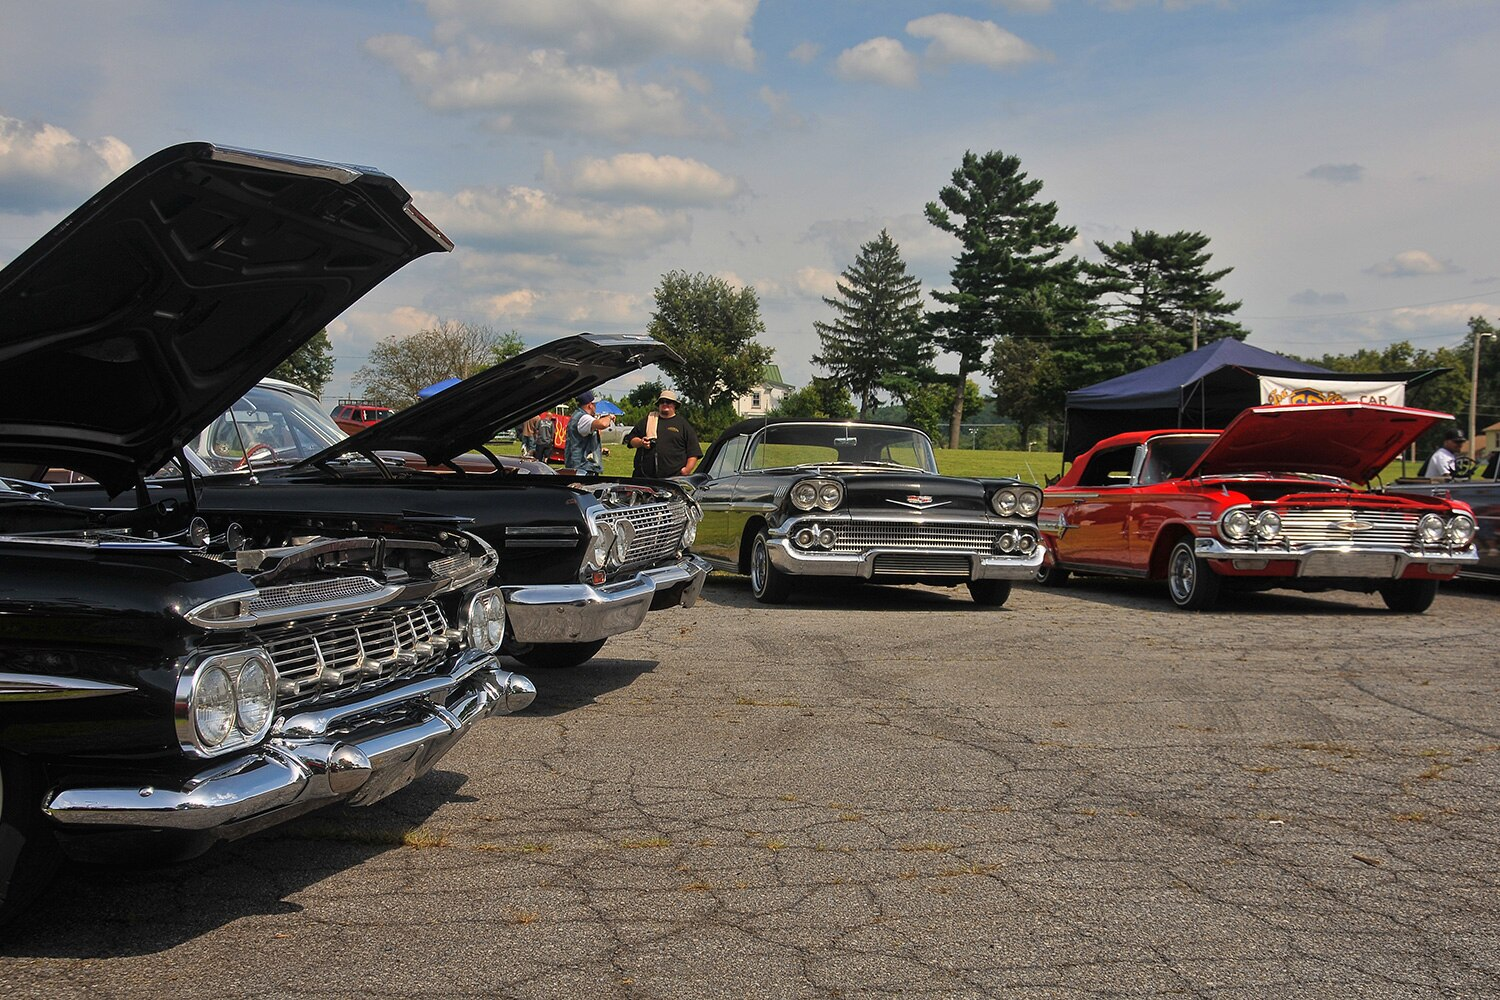 show-n-shine-4-lowriders-lined-up1